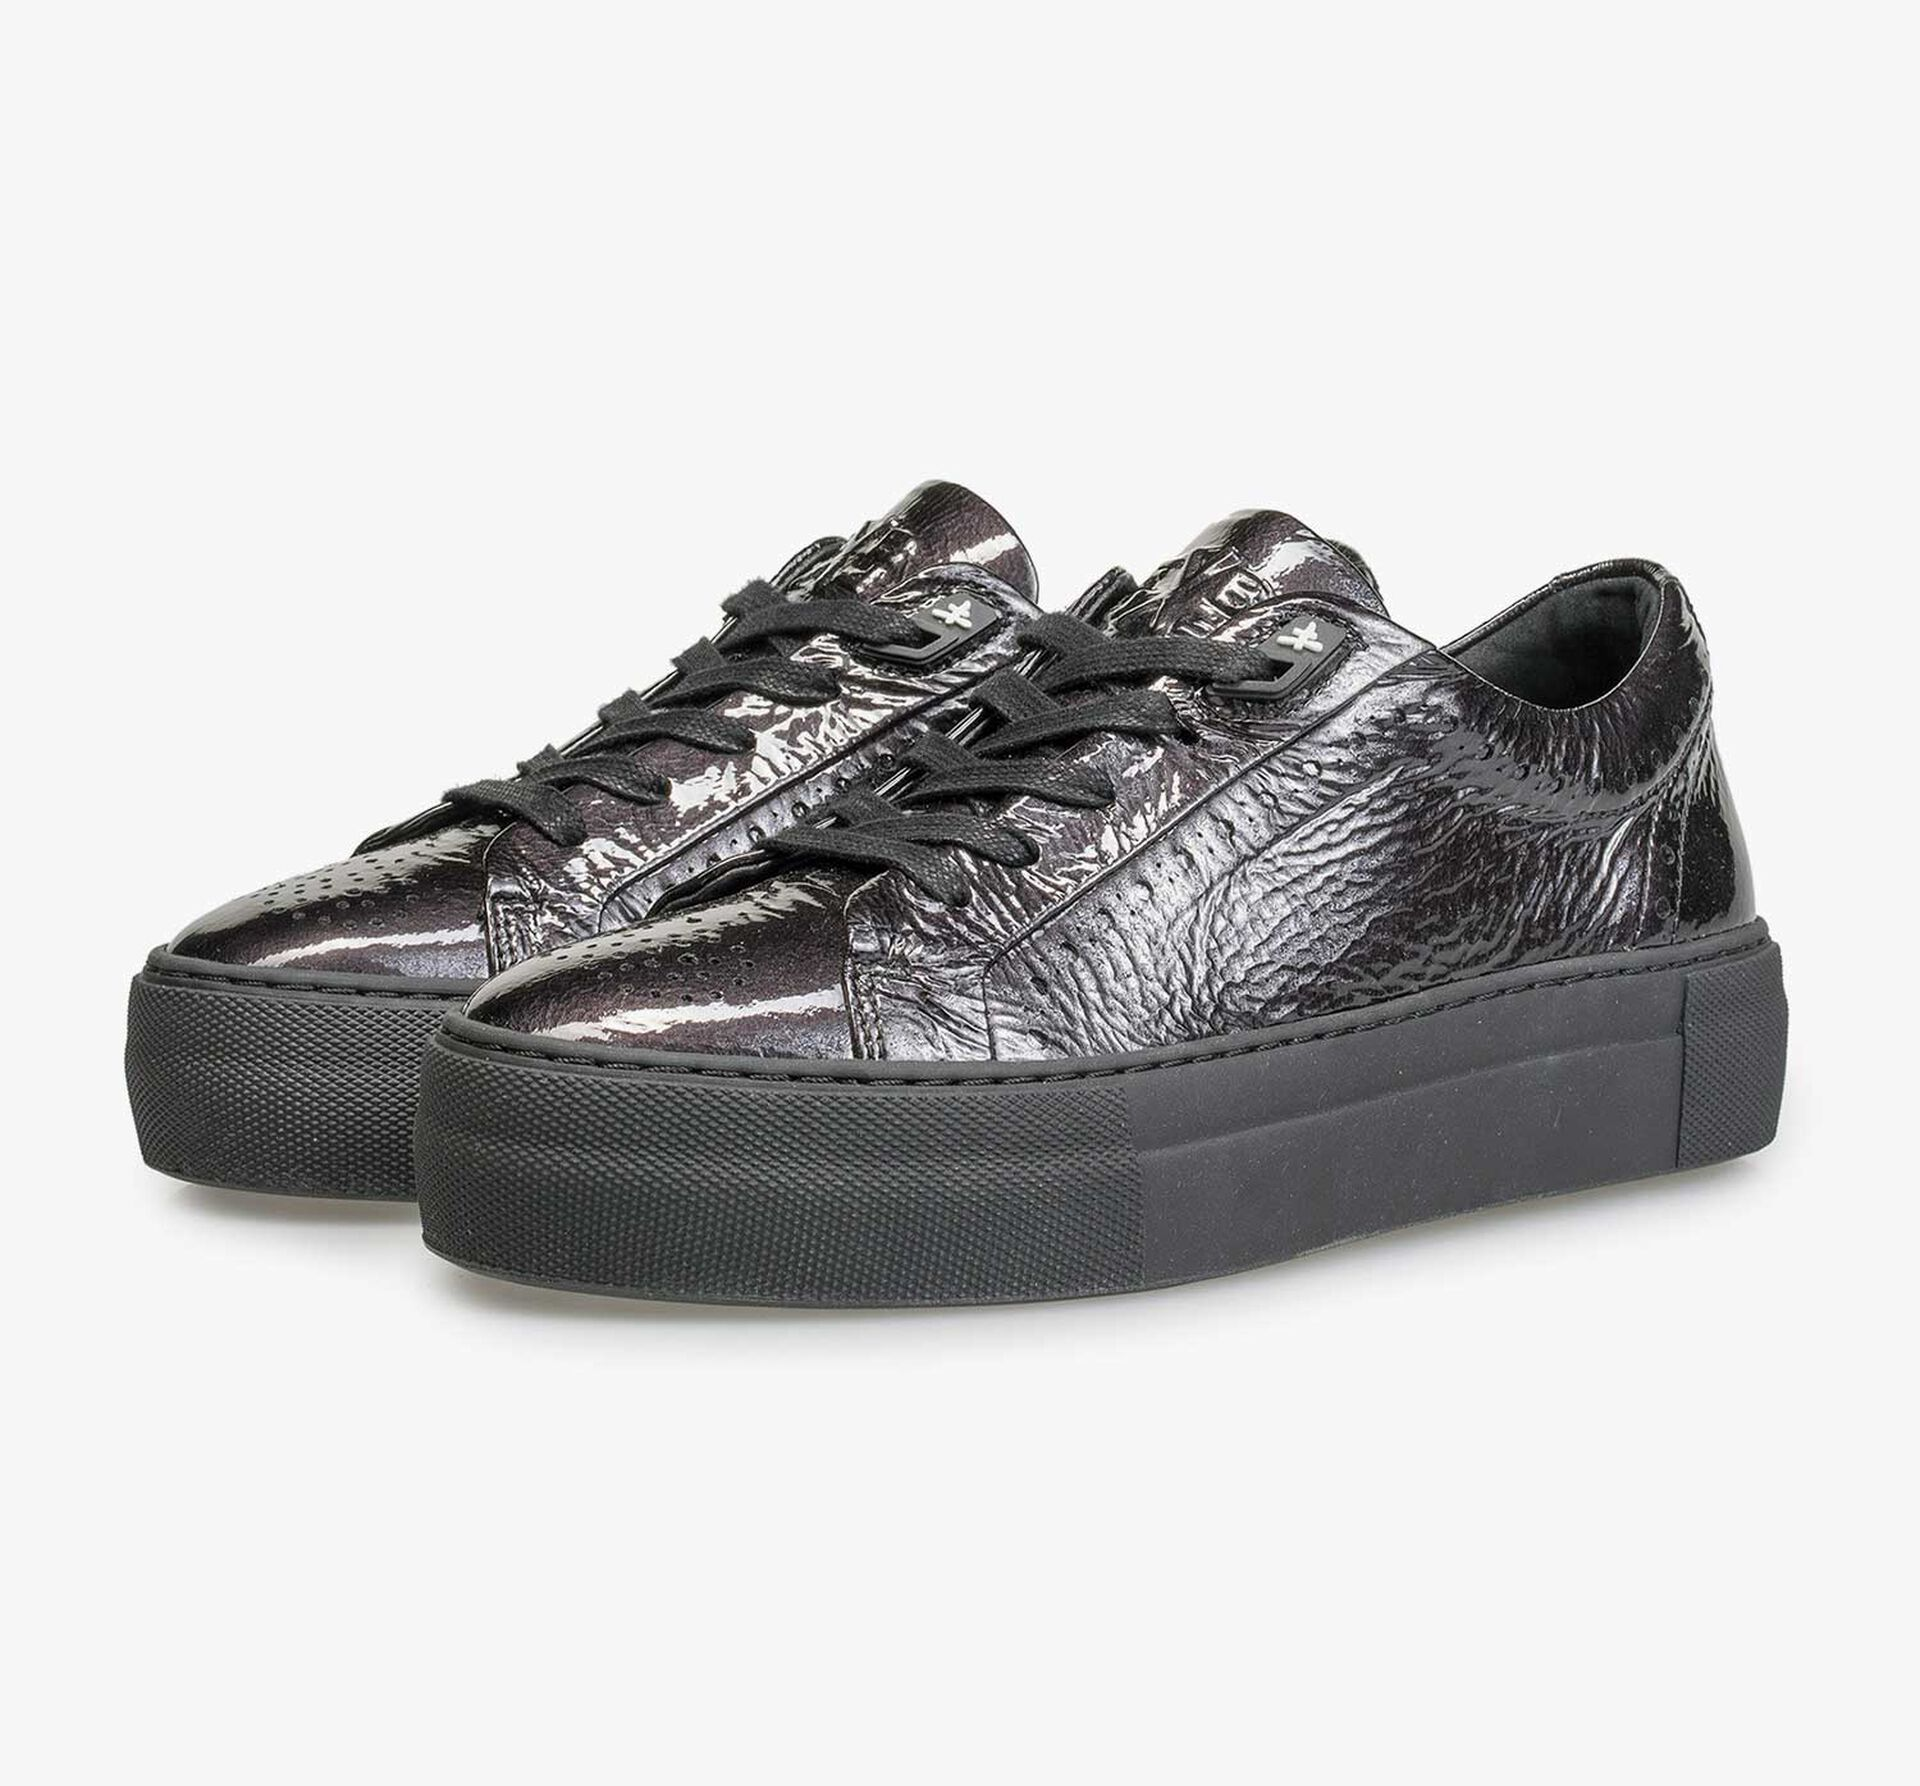 Black patent leather sneaker with wrinkle effect